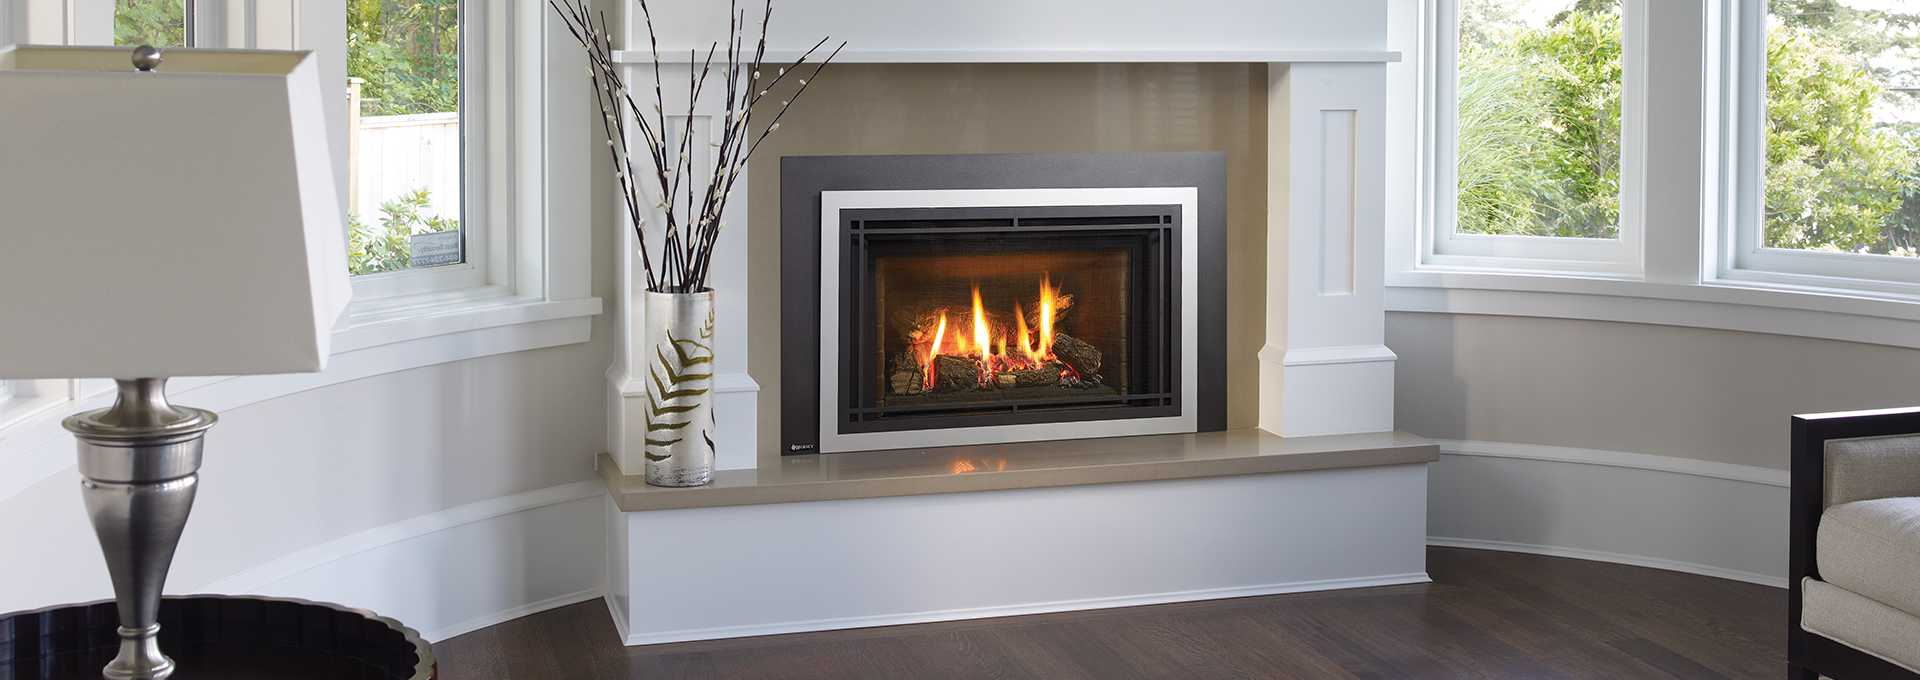 Pleasing Top 11 Gas Fireplace Insert Trends Of 2018 Beutiful Home Inspiration Papxelindsey Bellcom